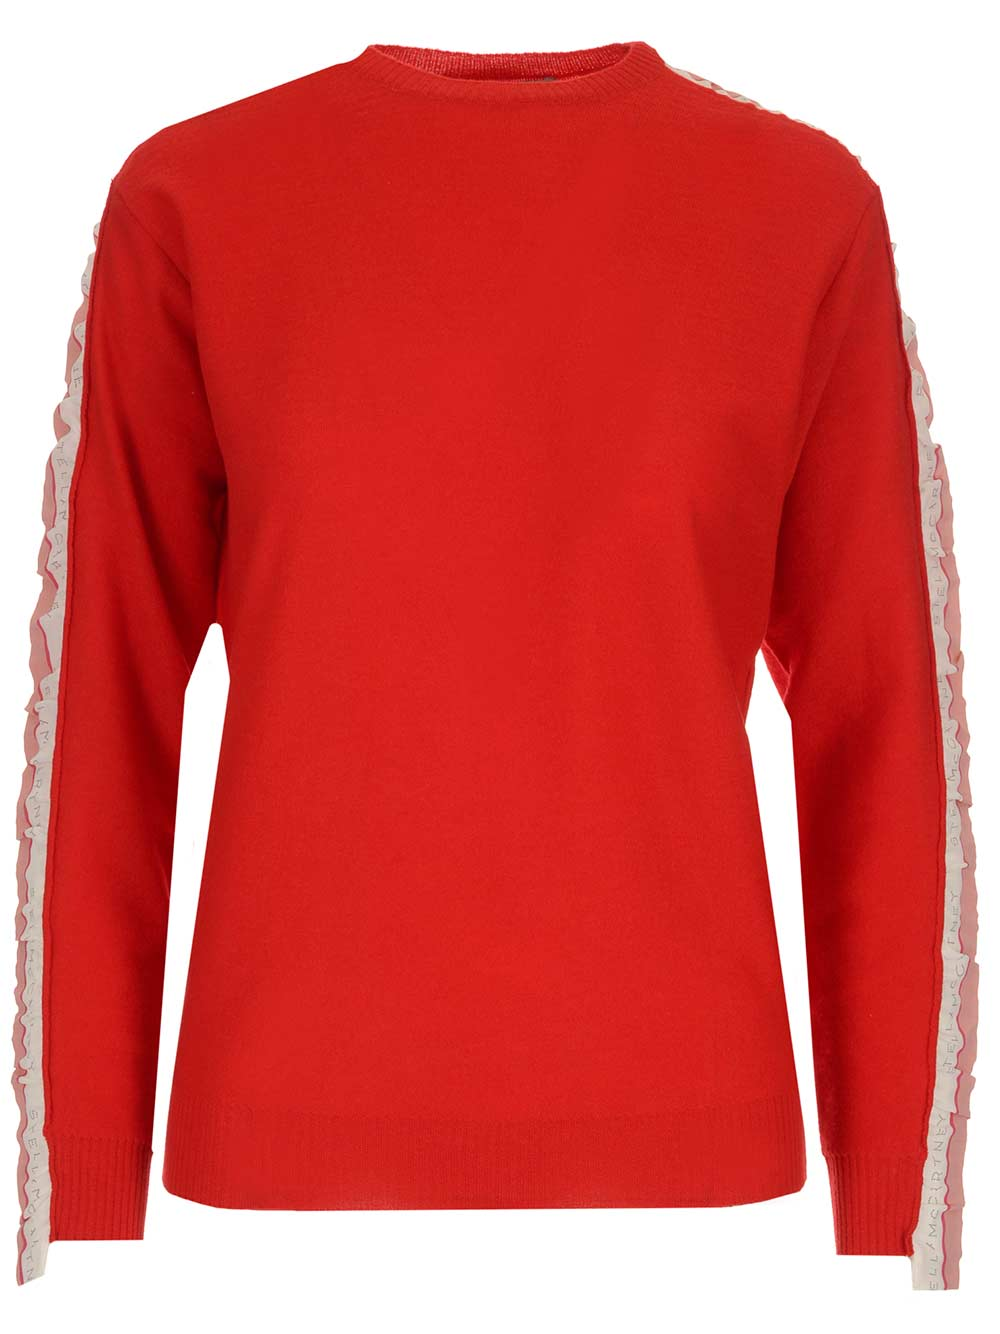 Stella Mccartney STELLA MCCARTNEY LOGO SIDE BAND SWEATSHIRT